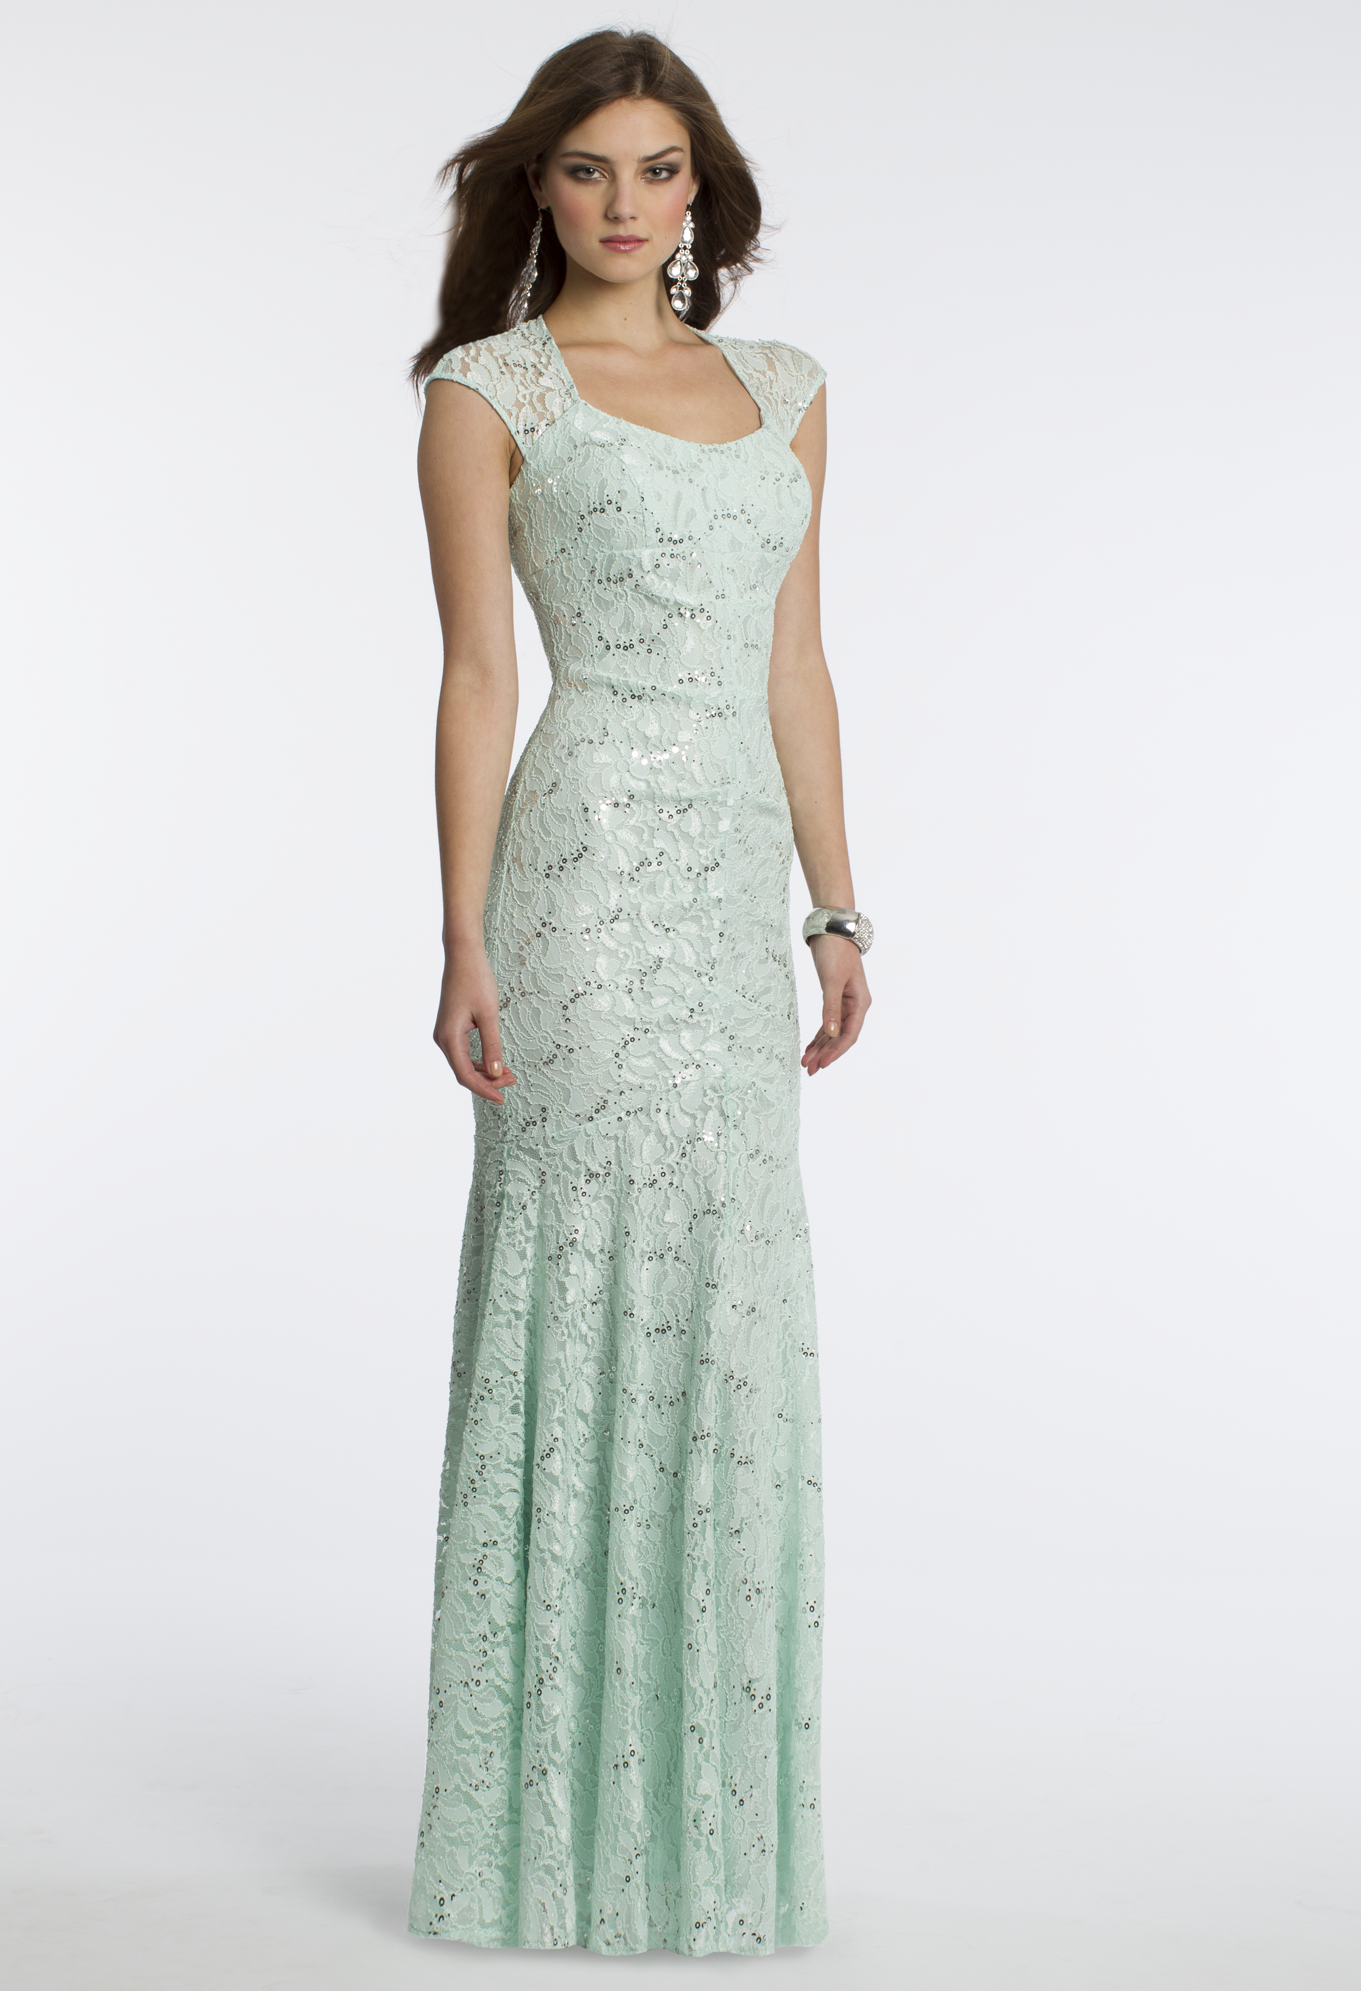 Camille La Vie Sequin Lace Prom Dress with Capped Sleeves